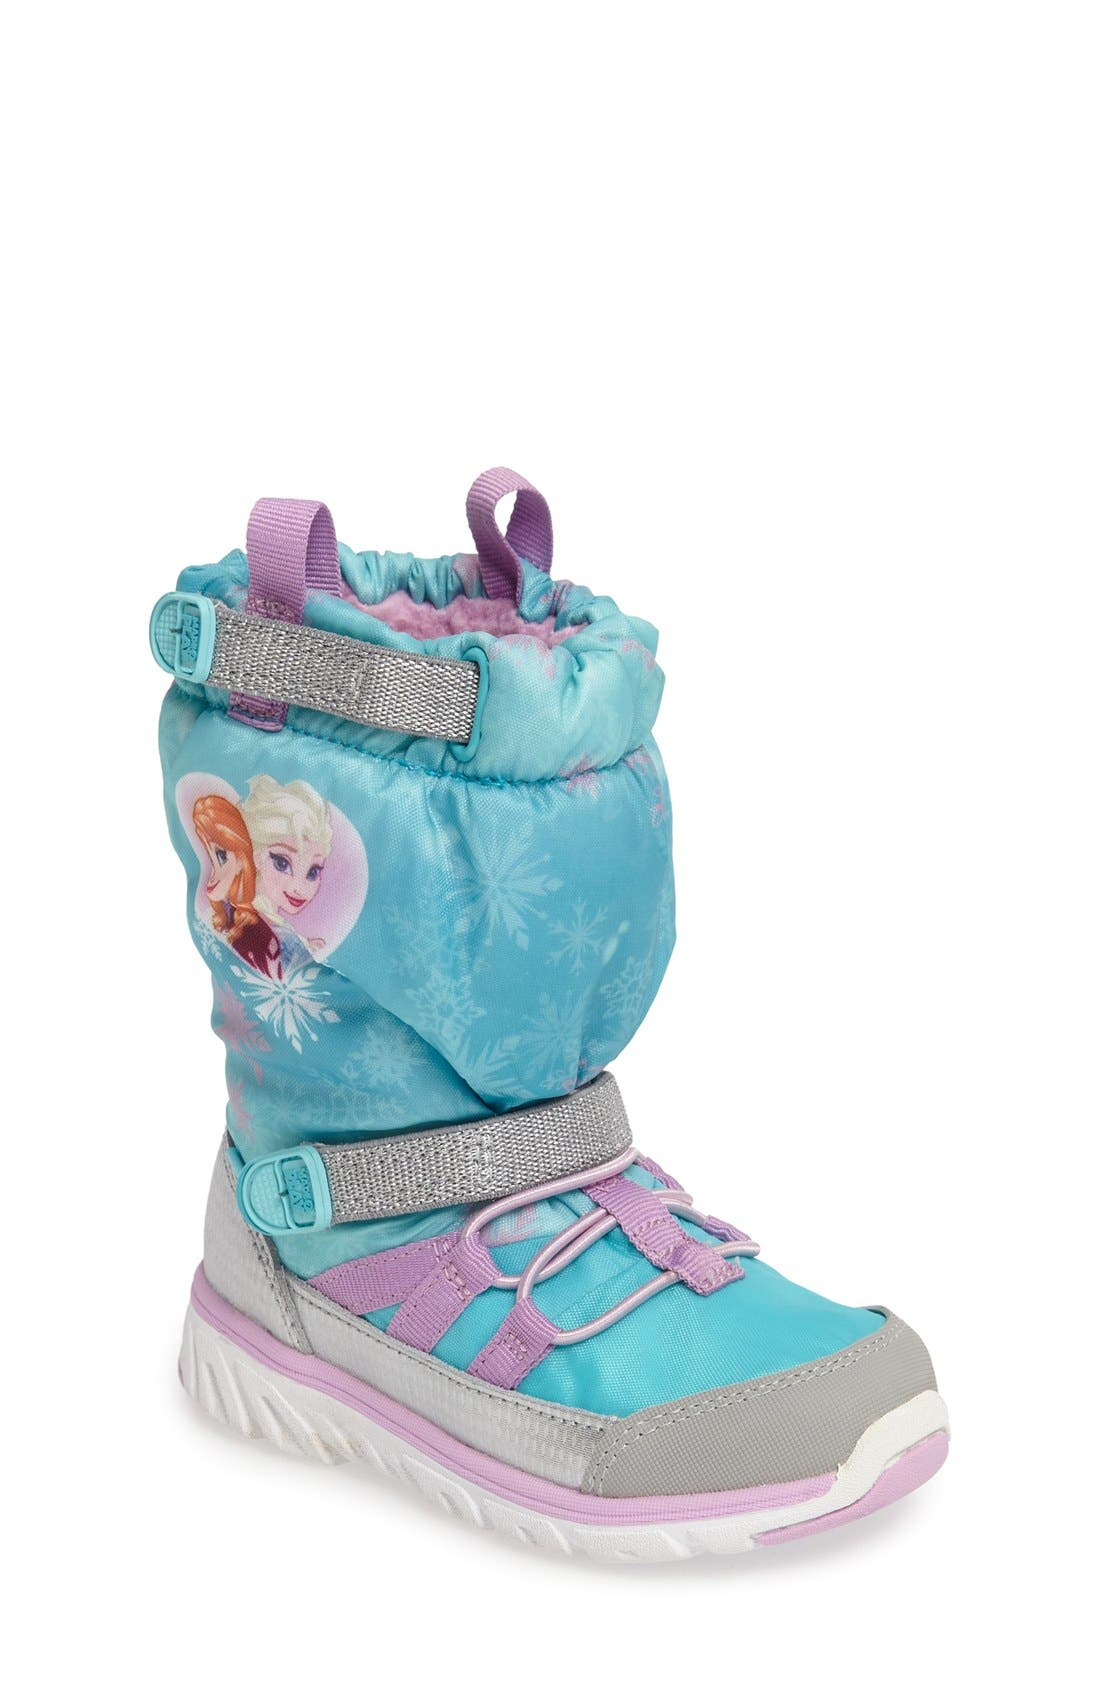 Disney<sup>®</sup> Frozen Made2Play Sneaker Boot,                             Main thumbnail 1, color,                             452